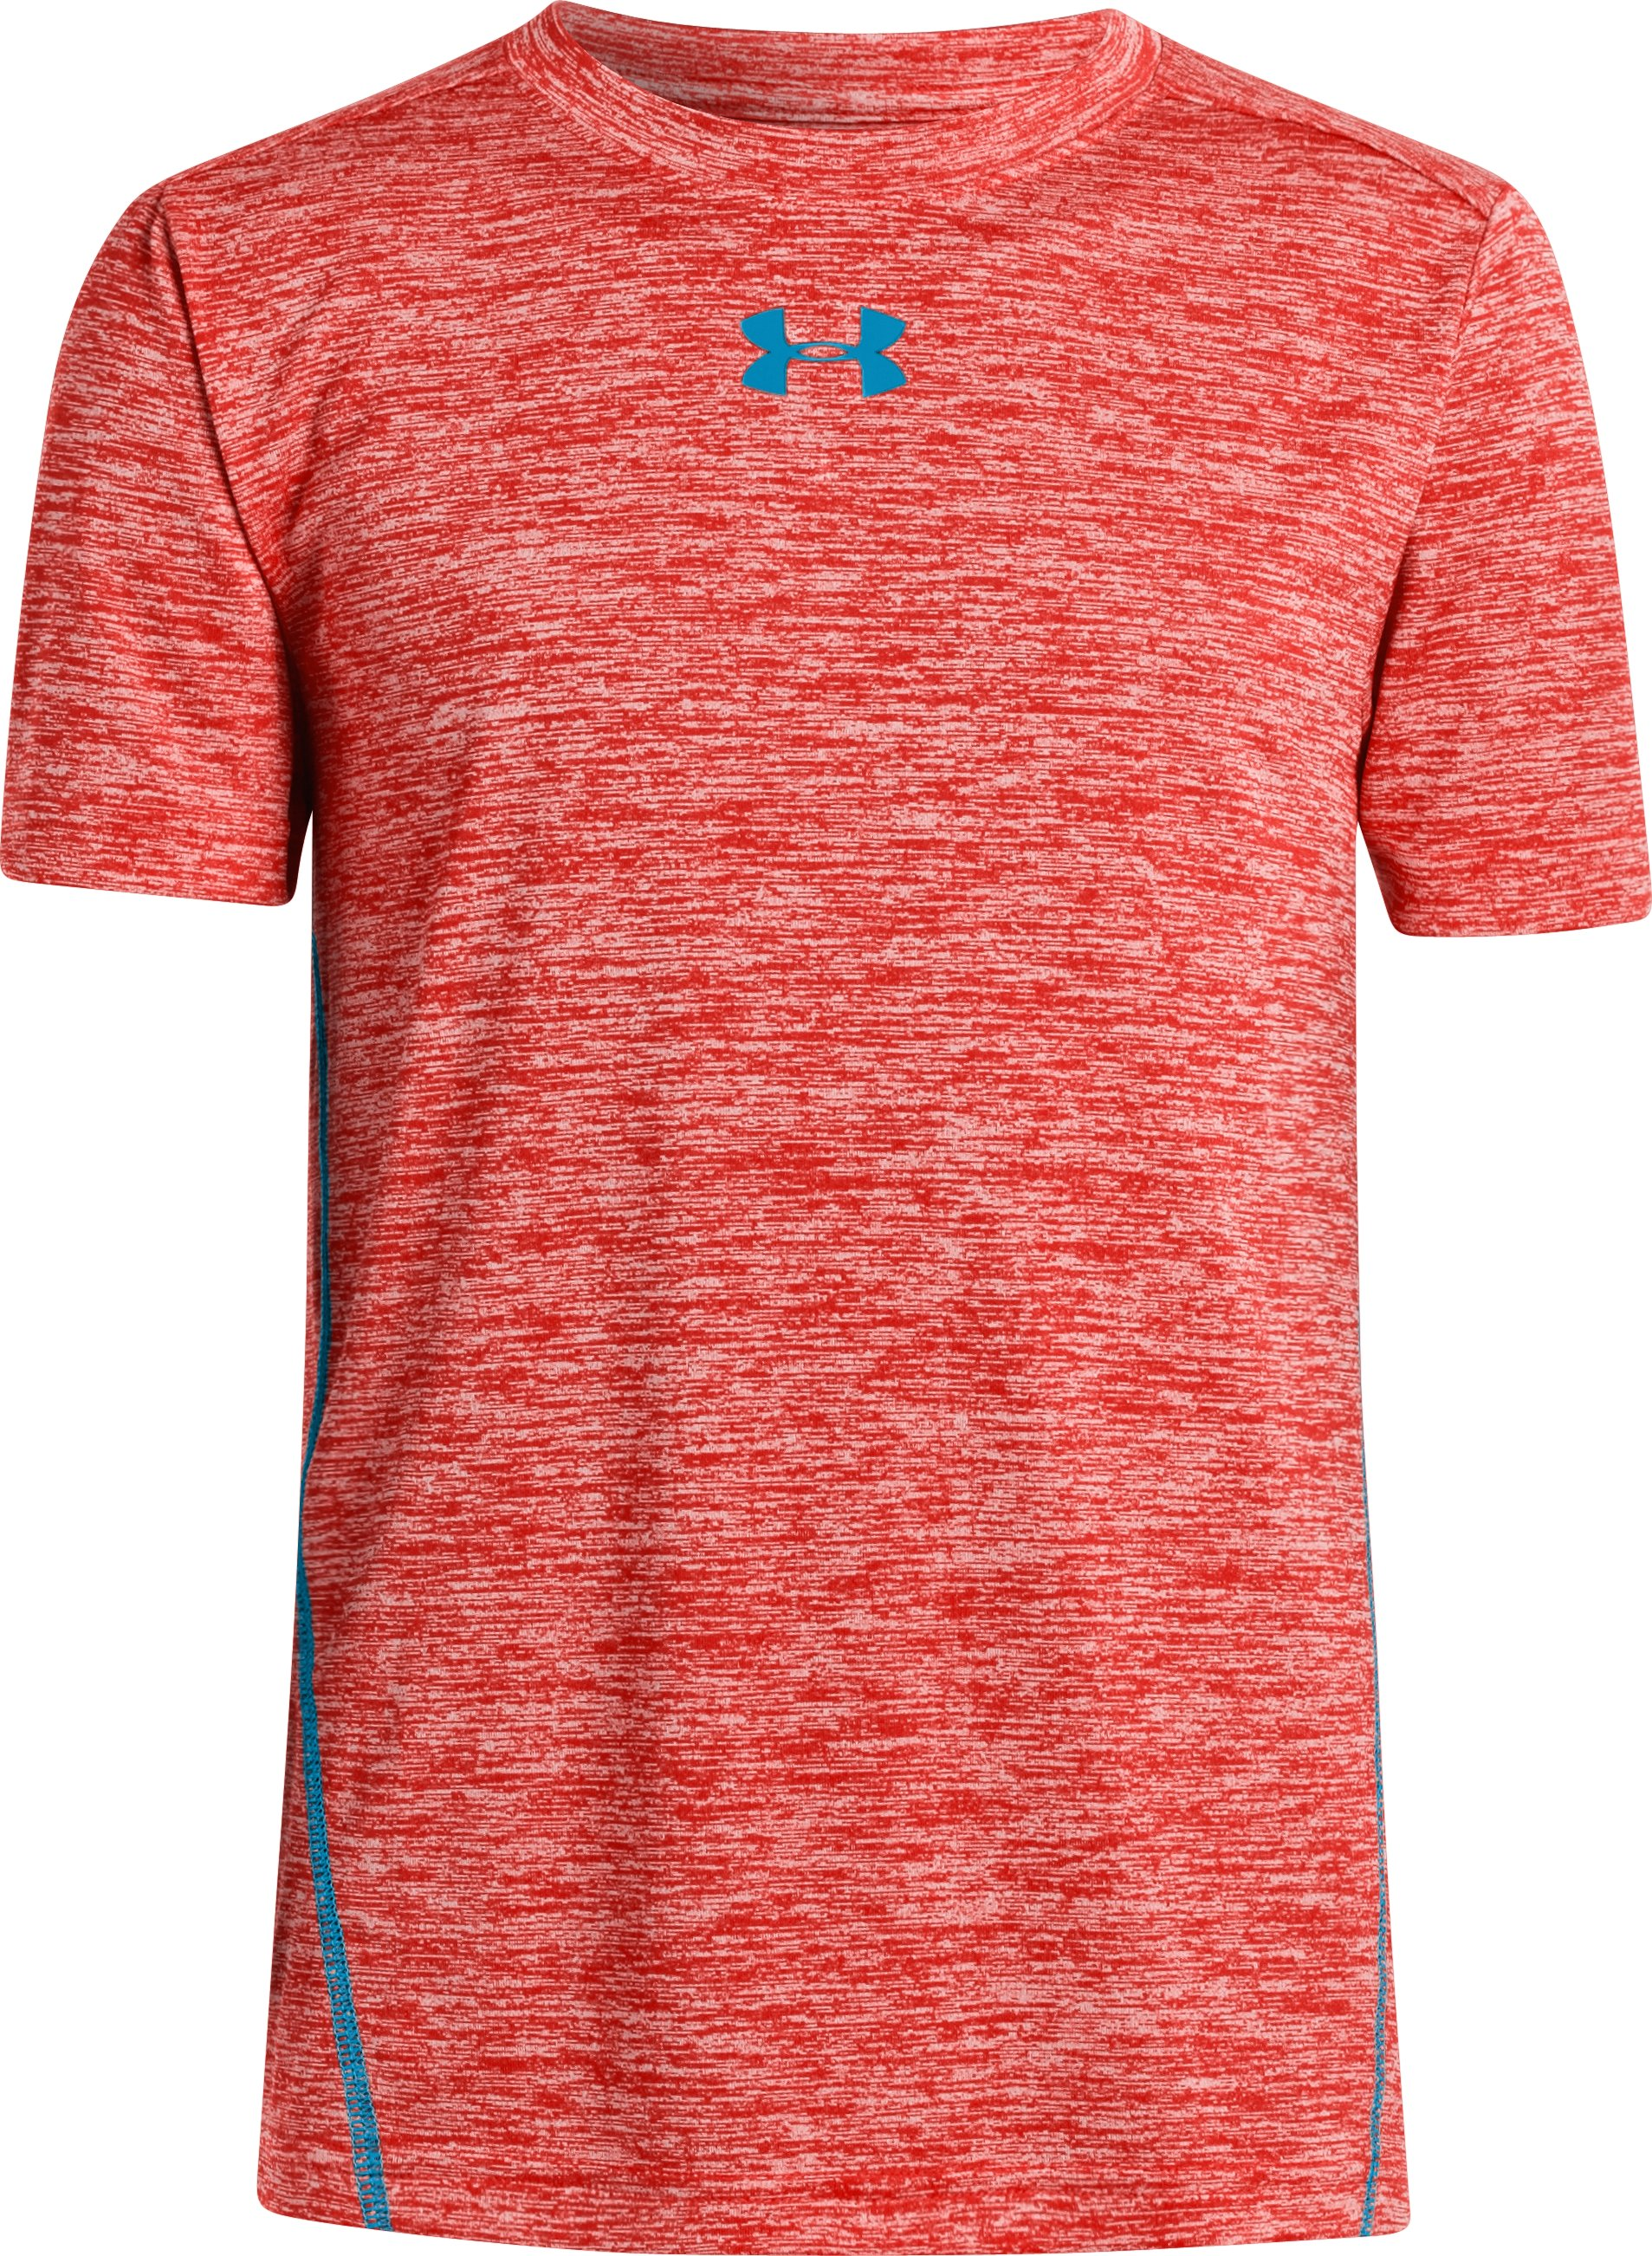 Boys' UA Tech™ Twist Short Sleeve T-Shirt, Noise, zoomed image